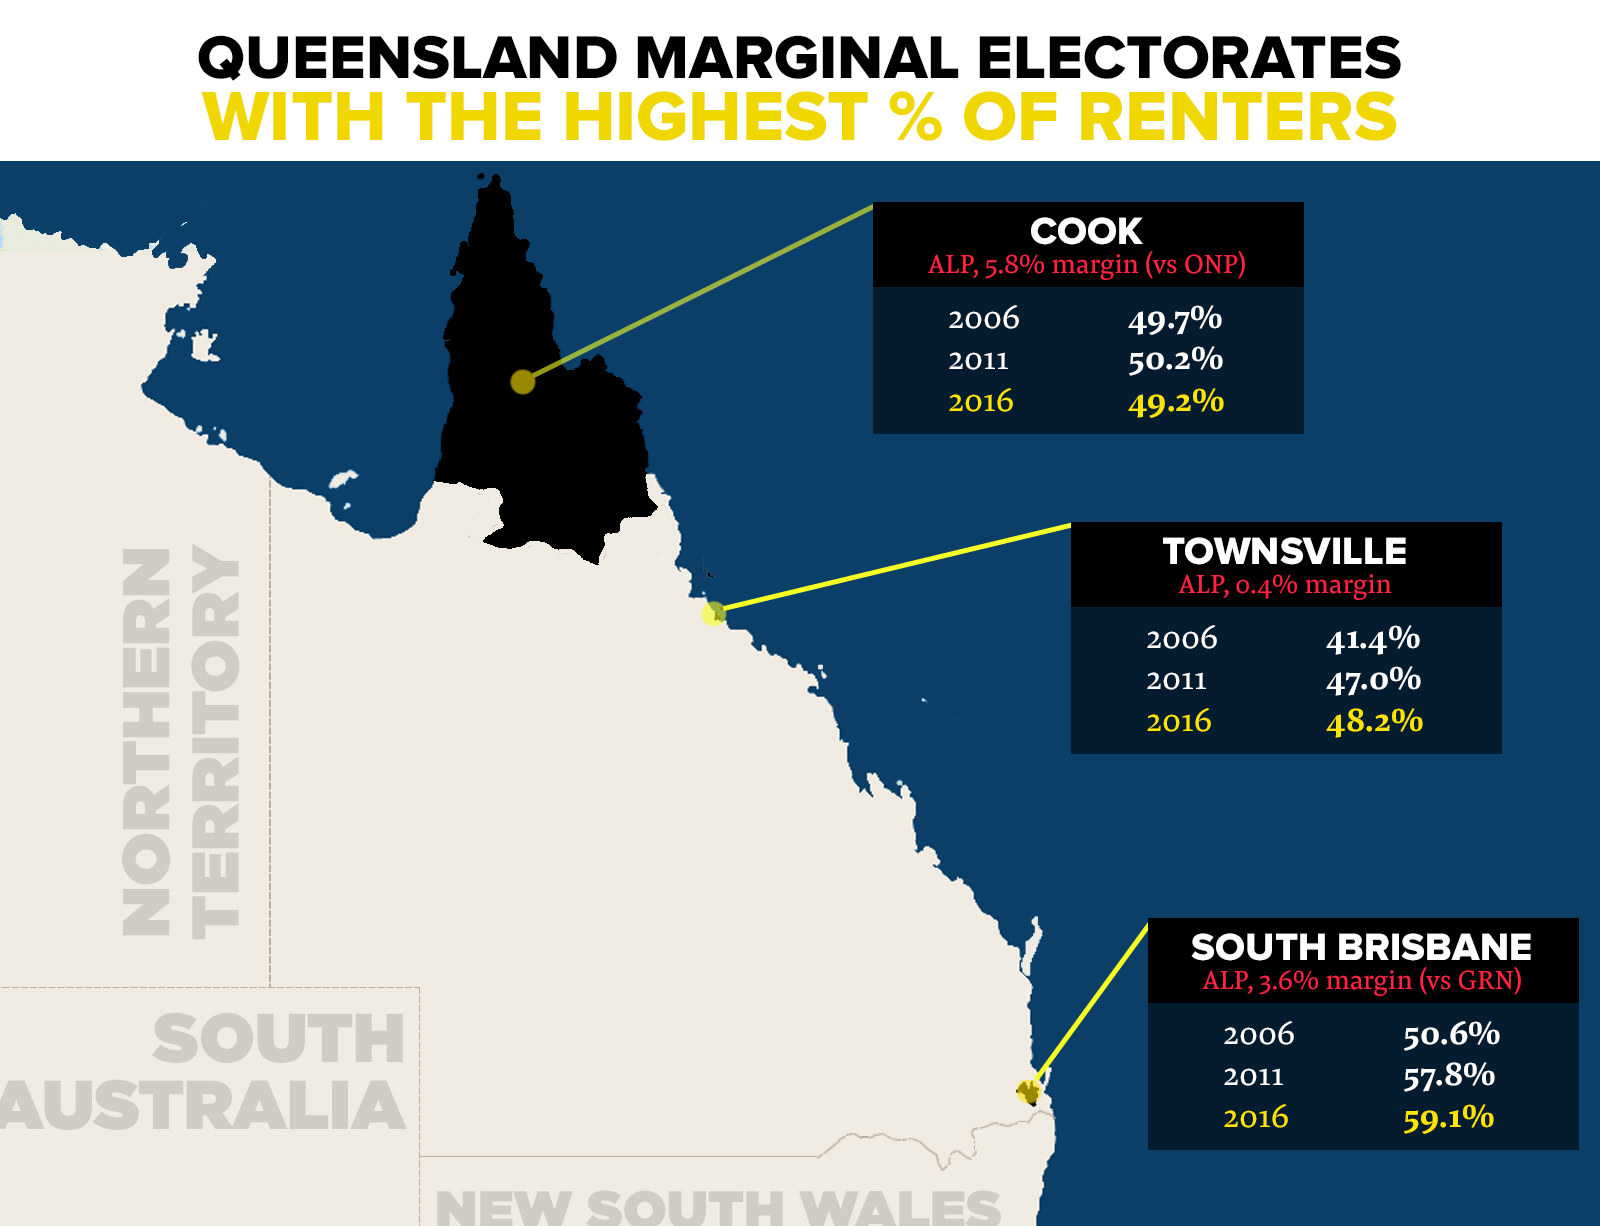 In Queensland, renting numbers increased between the last two censuses in 20 of the 35 marginal electorates for which there is data available from both 2011 and 2016 (other electorates have been created since). In all but three, numbers have grown between 2006 and 2016. These numbers could be one reason why the Queensland government has flagged significant renting reform to come in 2019.In South Brisbane, rentals make up a solid 59.1% of dwellings, and numbers in Townsville, Cairns and Cook are nearing 50%.